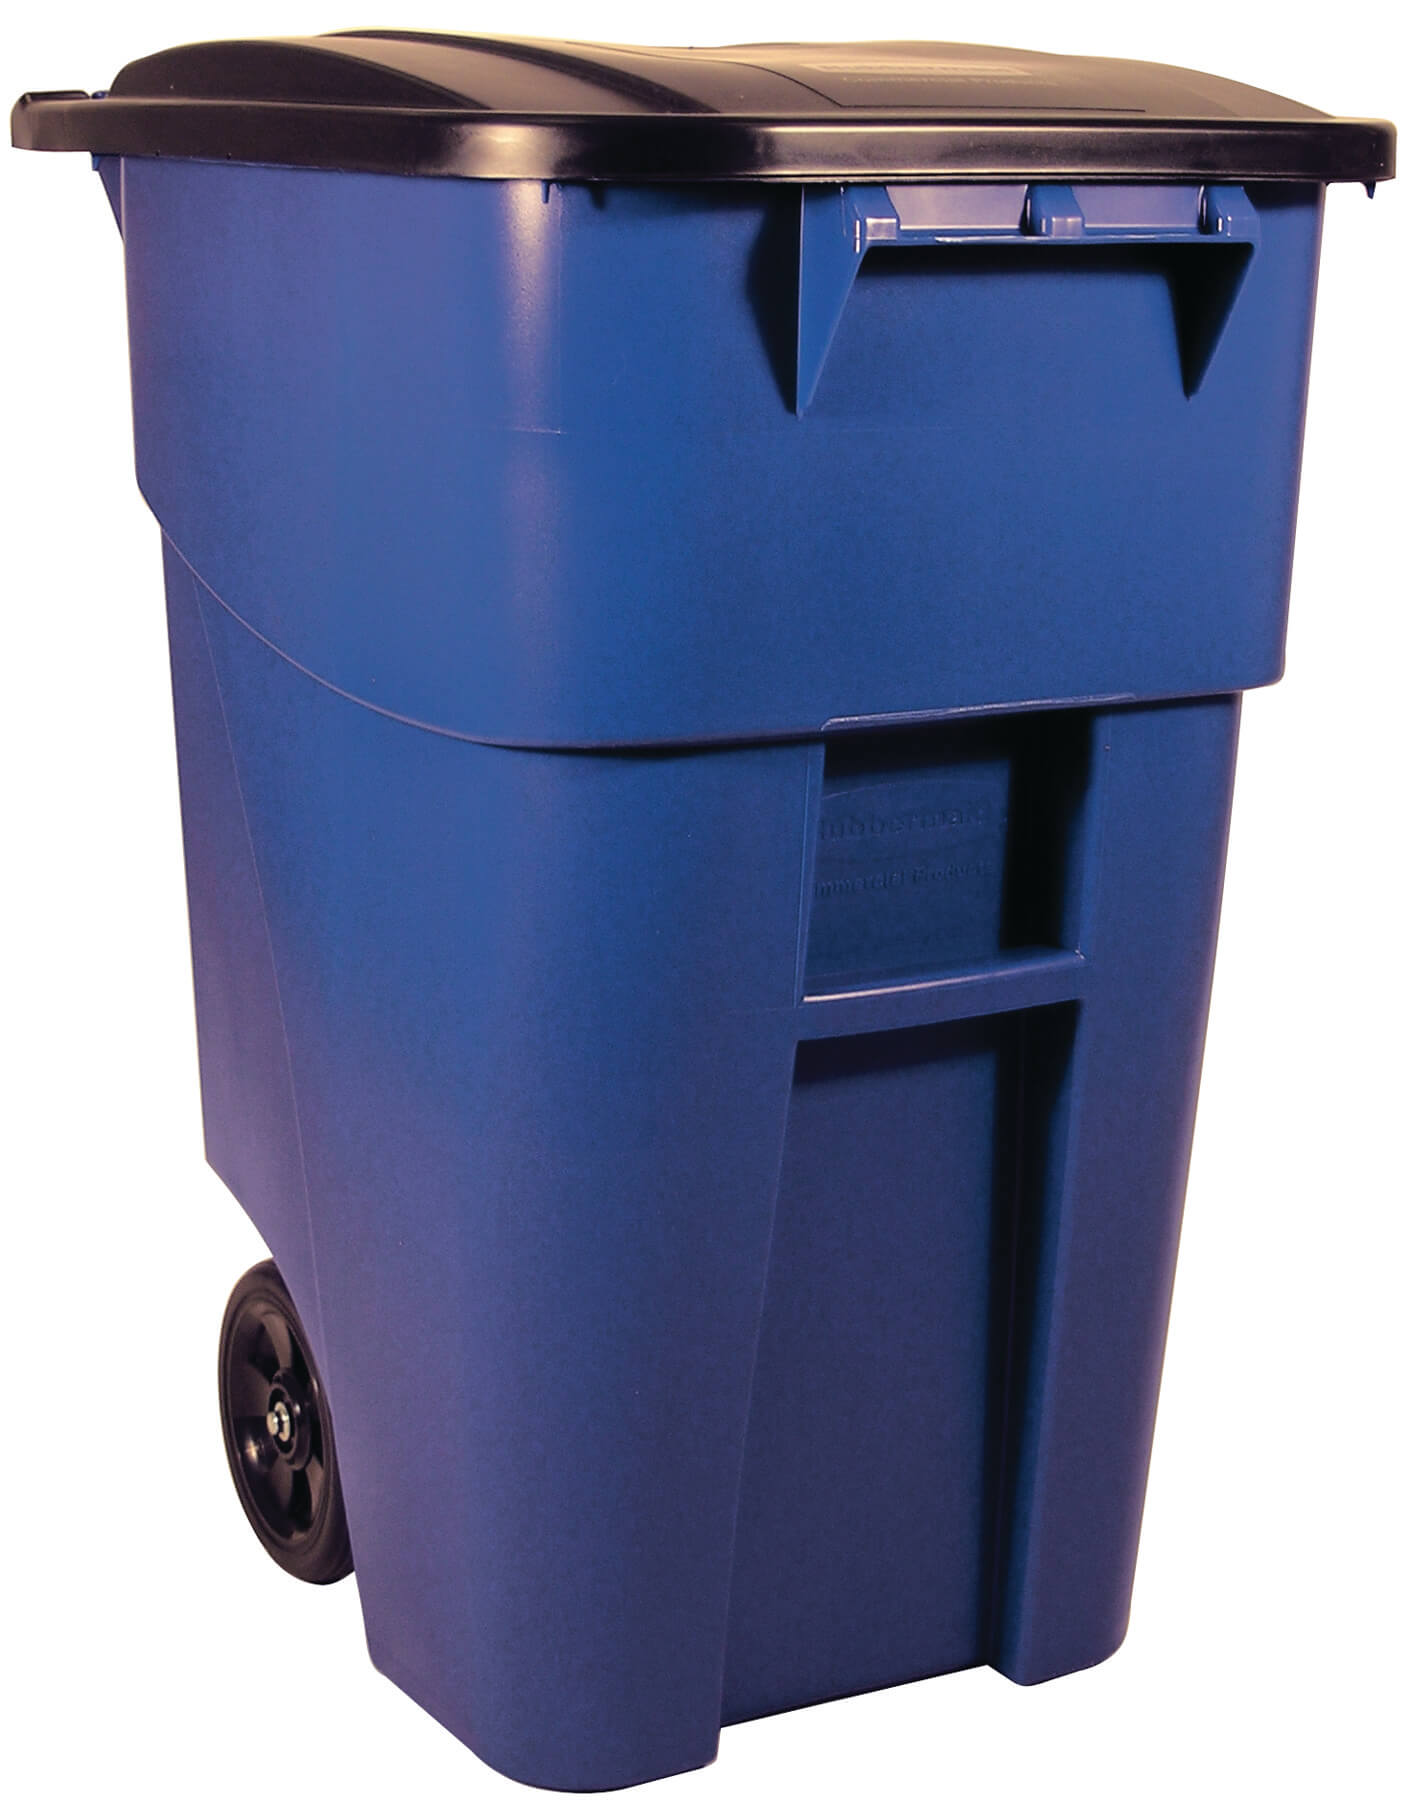 50 Gallon Brute Rollout Container With Lid Trashcans